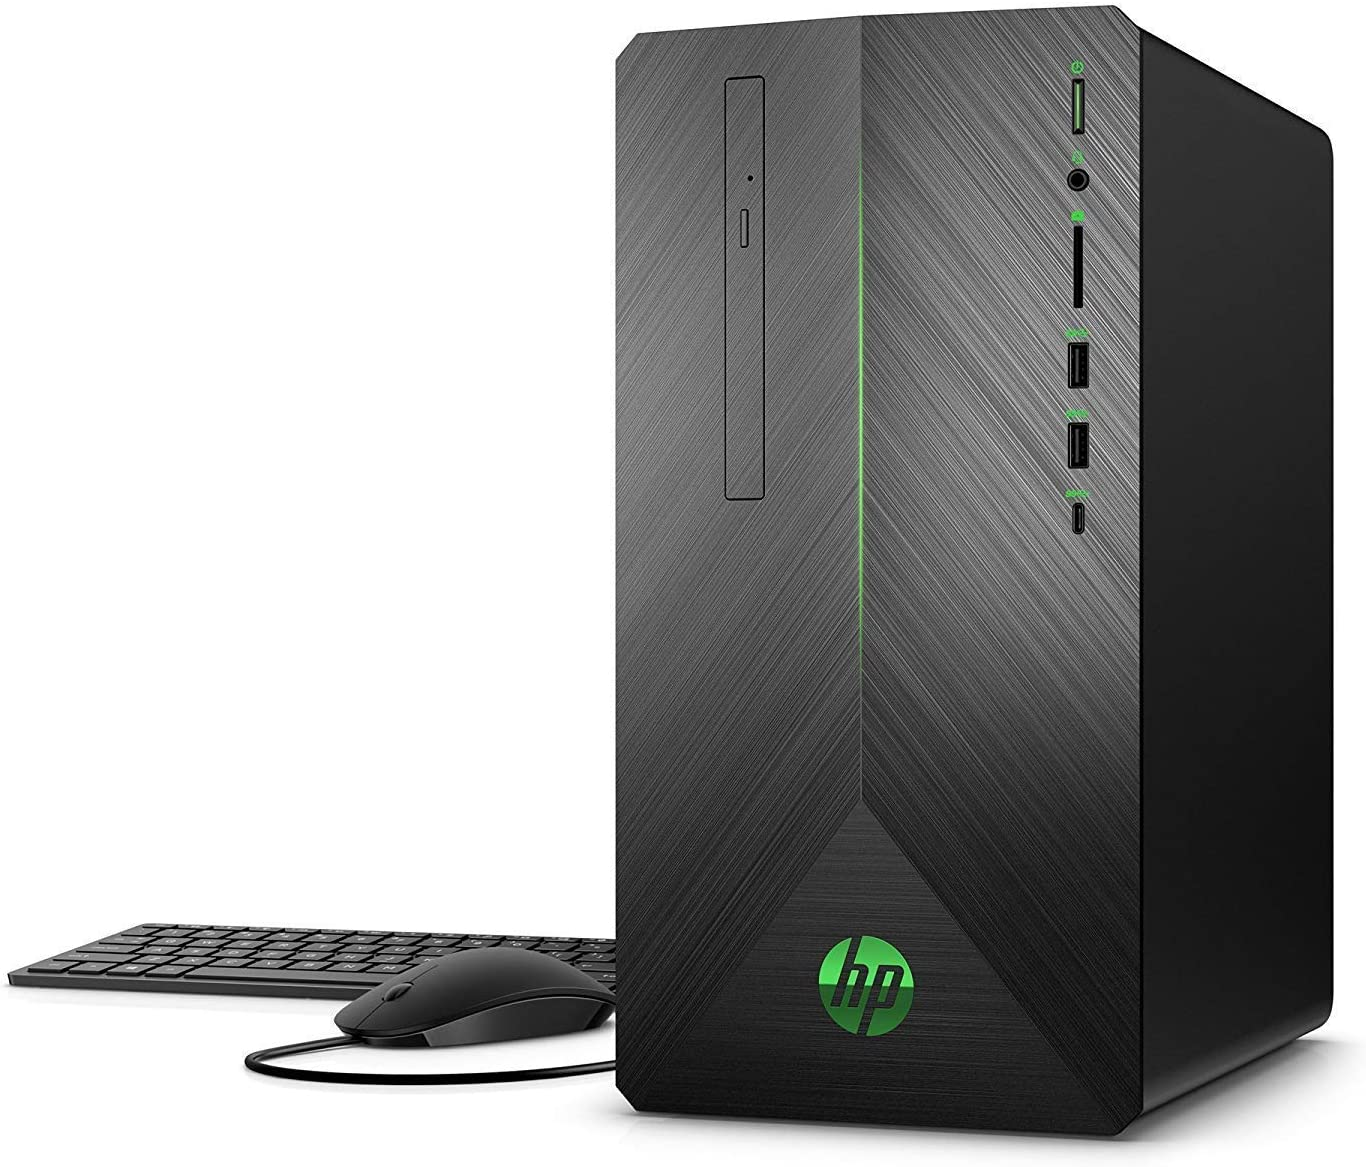 HP Pavilion 690 Gaming Desktop, 2019 Flagship High Performance Computer, AMD Quad-Core Ryzen 5 2400G, 16GB DDR4, 128GB SSD, 1TB HDD, 4GB AMD Radeon RX 580 DVD-RW USB-C Bluetooth 4.2 802.11ac Win 10